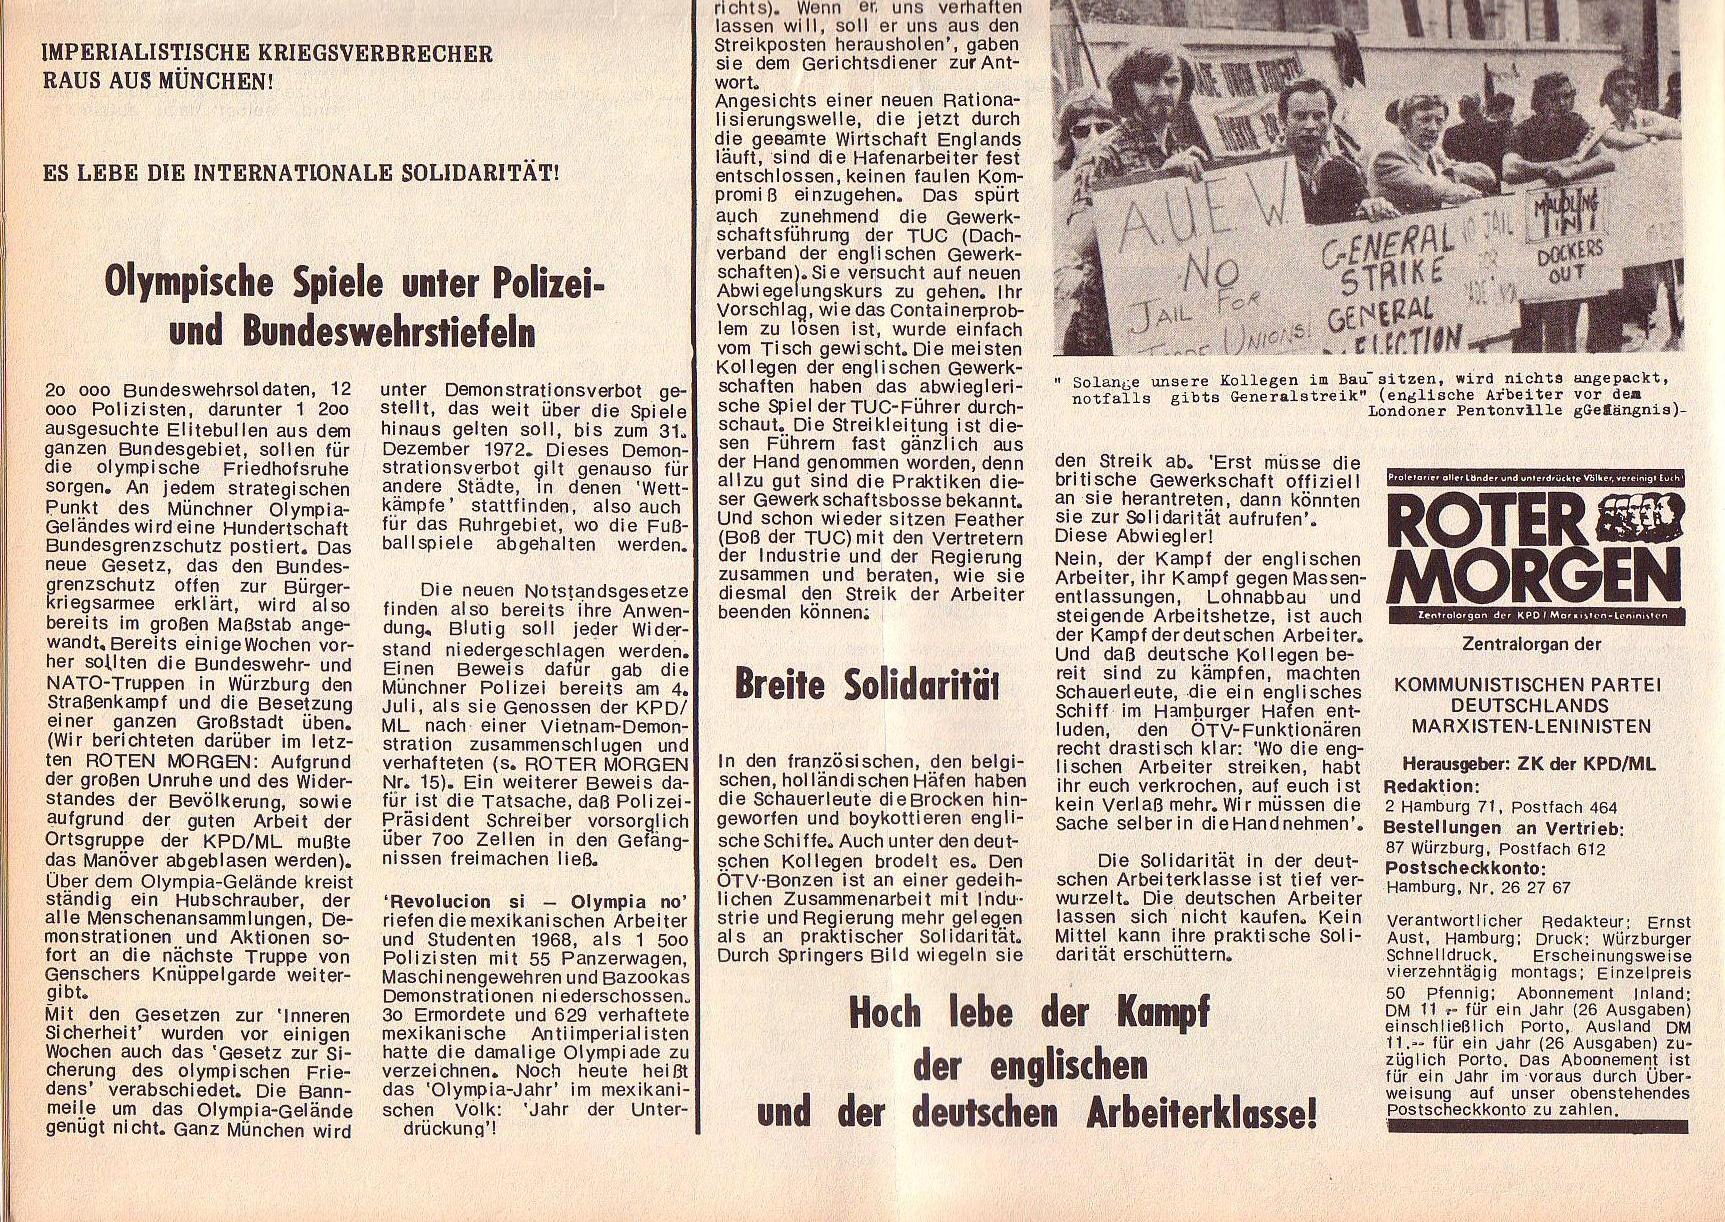 Roter Morgen, 6. Jg., 14. August 1972, Nr. 16, Seite 2b